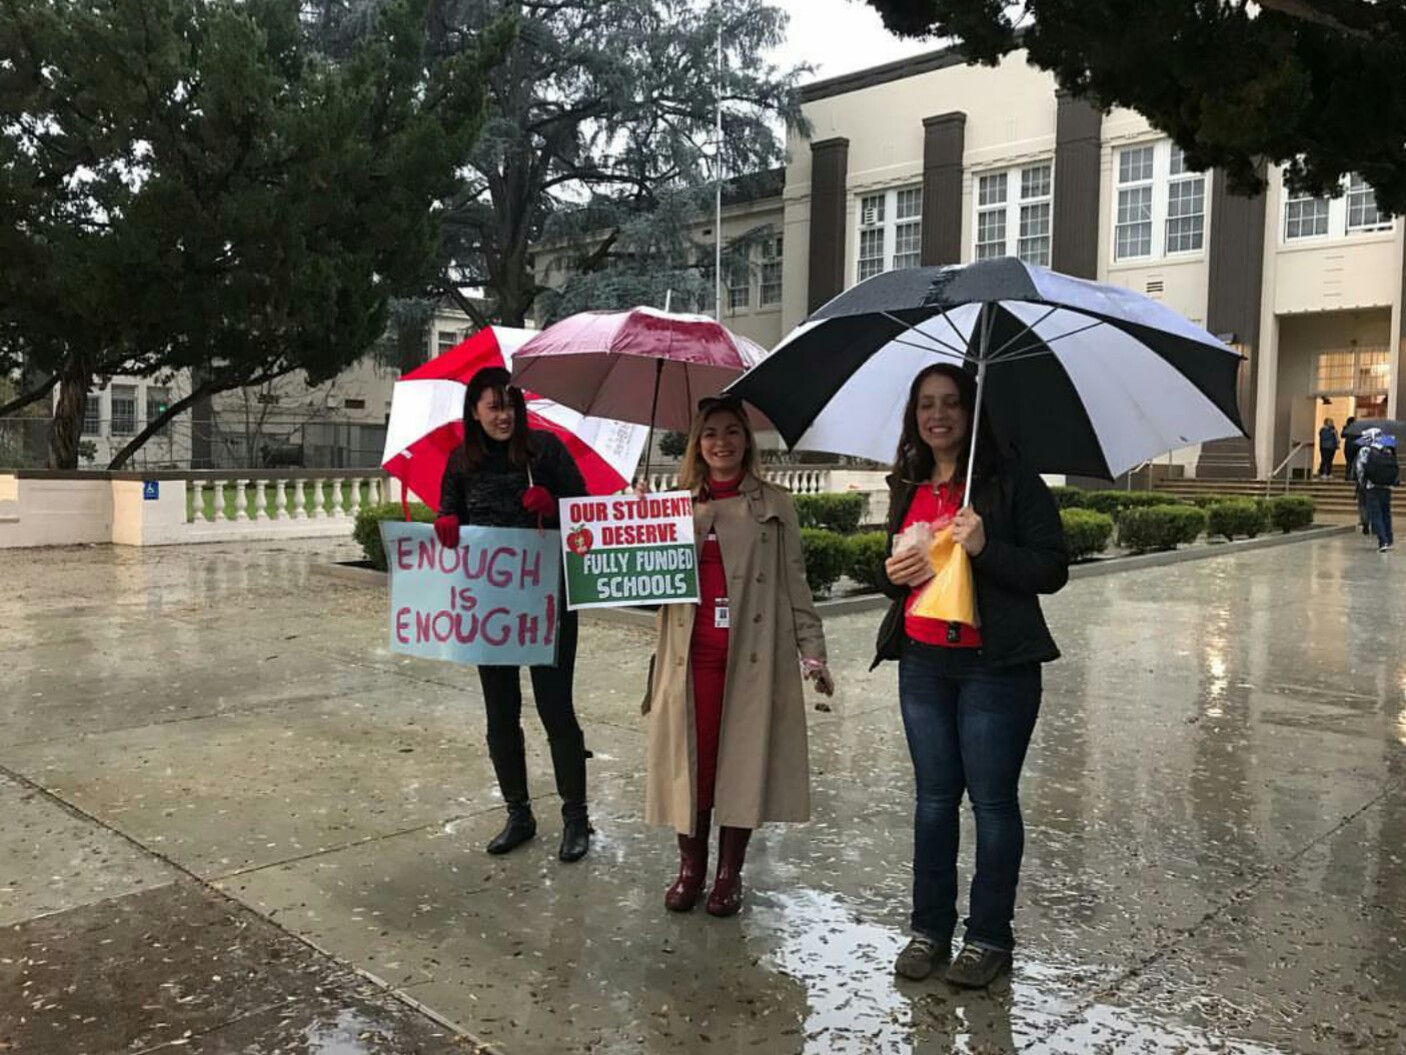 Van Nuys' teachers picket in front of the school the first day of the strike, January 14.